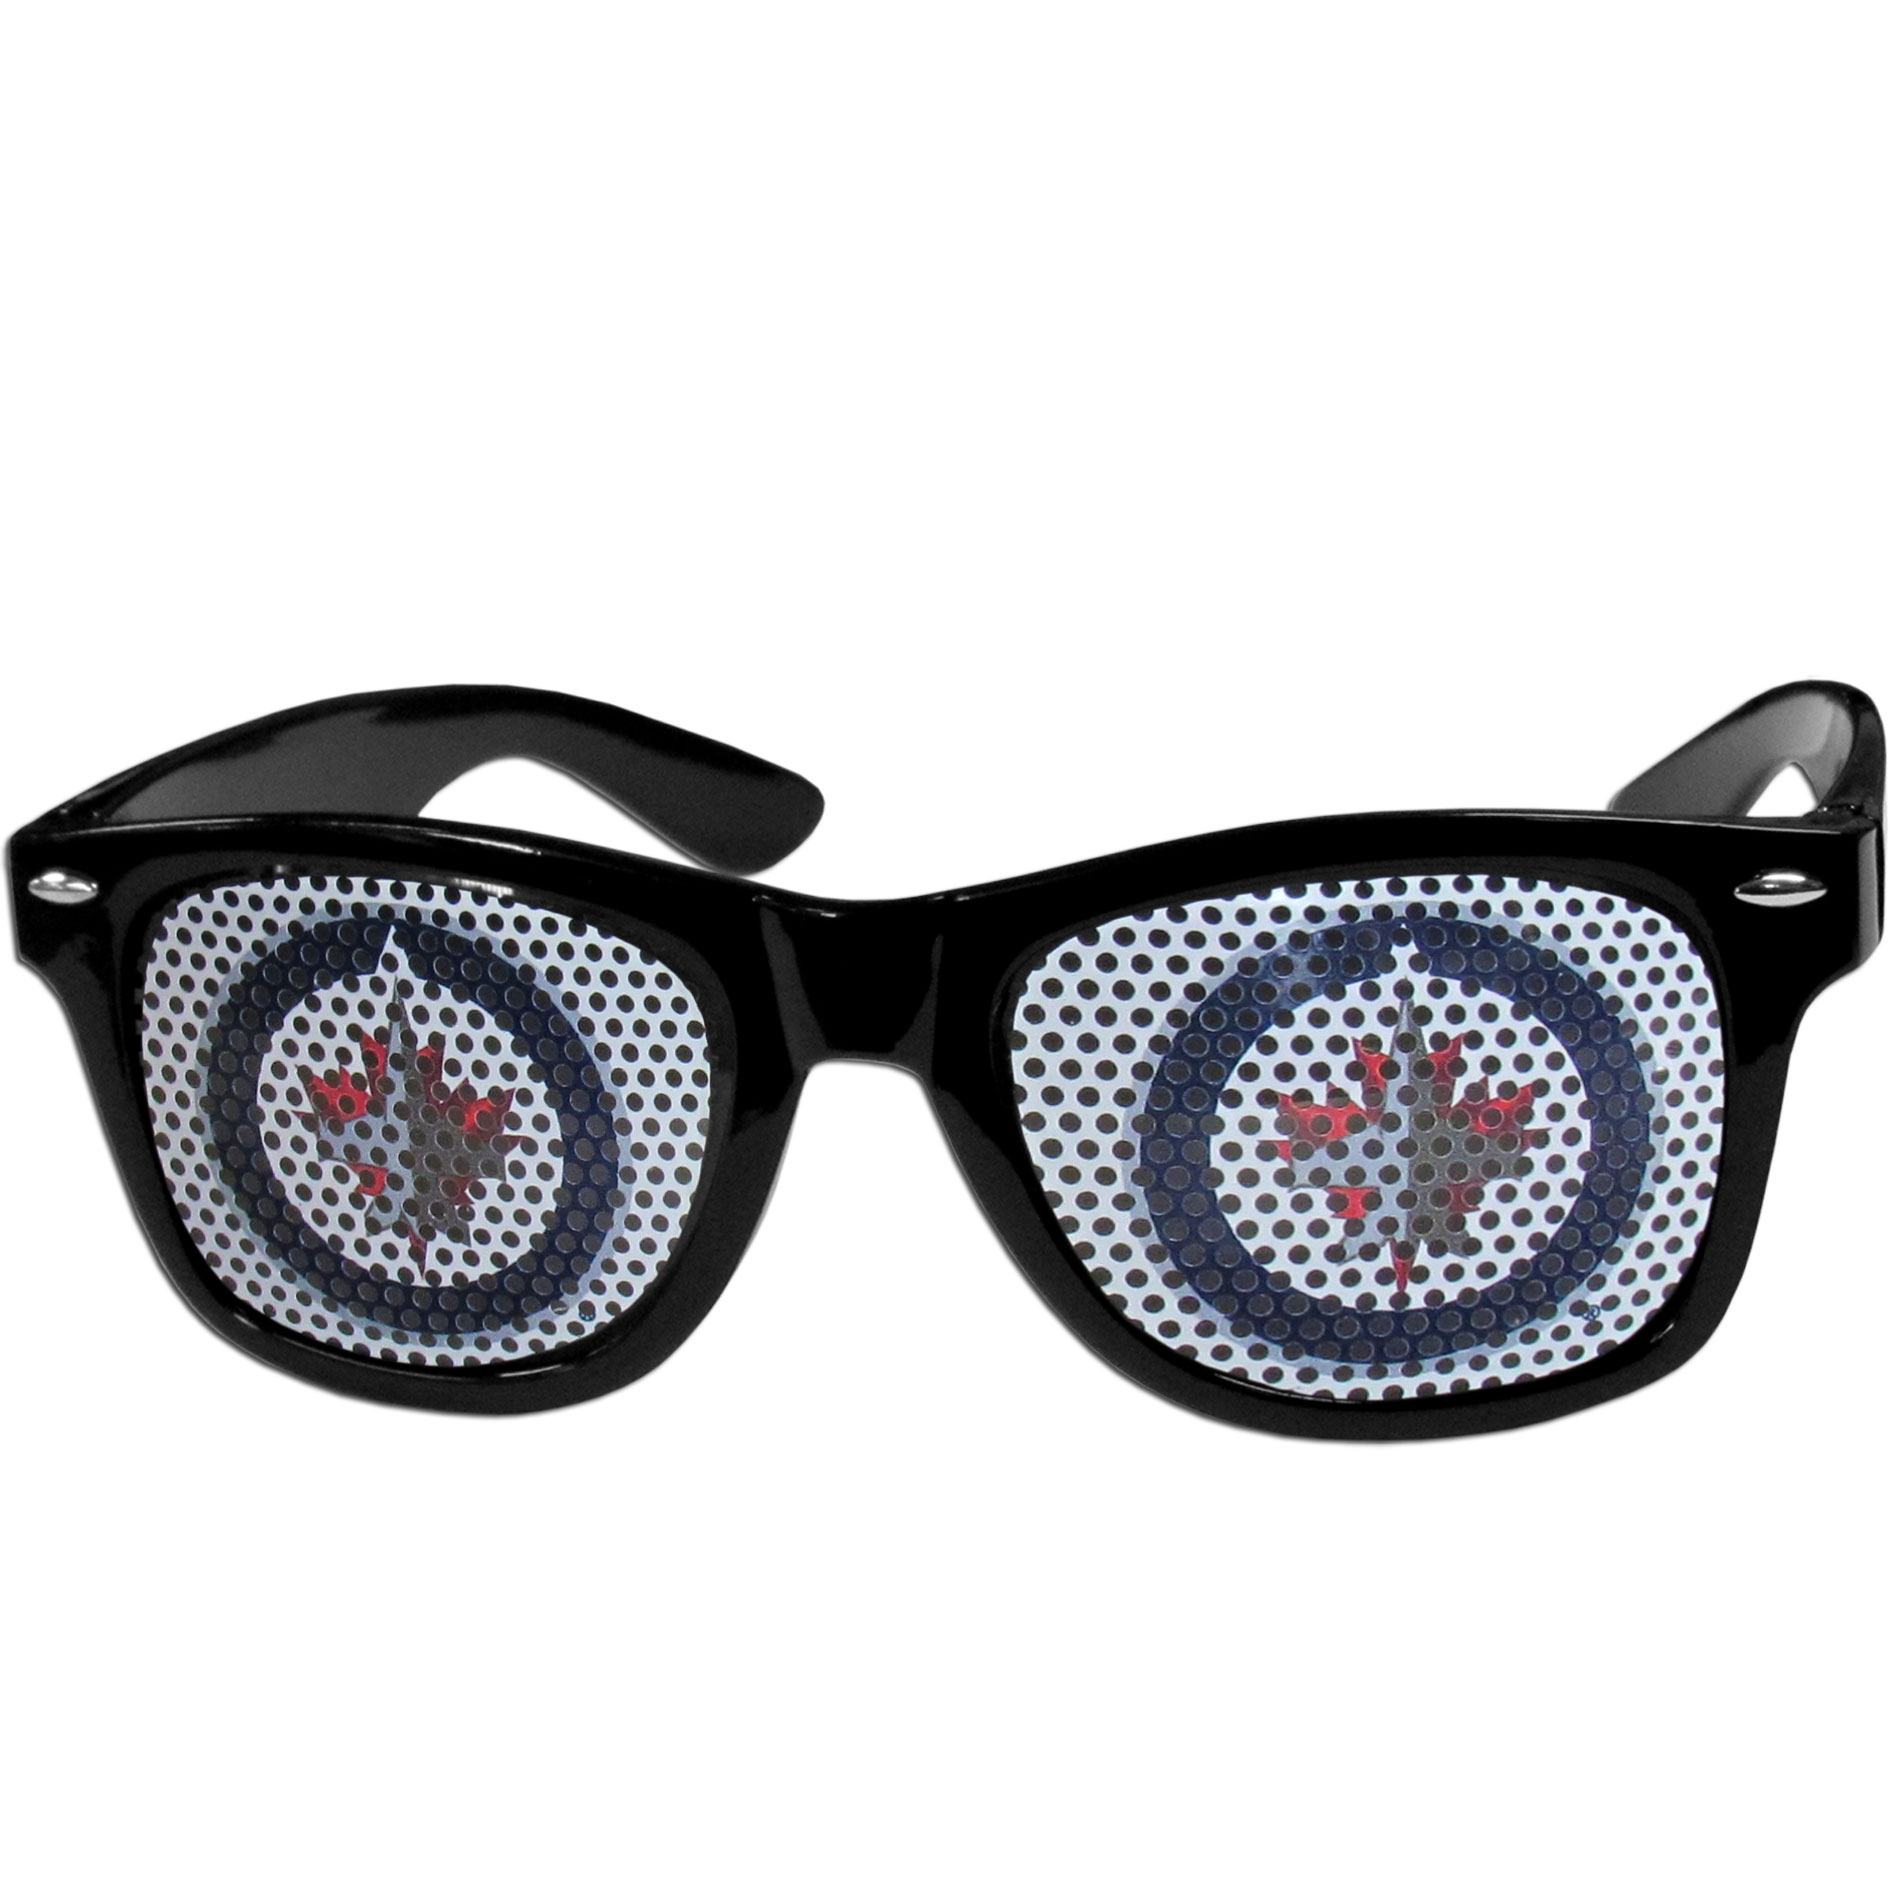 Winnipeg Jets Game Day Shades - Officially licensed Winnipeg Jets game day shades are the perfect accessory for the devoted Winnipeg Jets fan! The Winnipeg Jets game day sunglasses have durable polycarbonate frames with flex hinges for comfort and damage resistance. The lenses feature brightly colored Winnipeg Jets clings that are perforated for visibility.